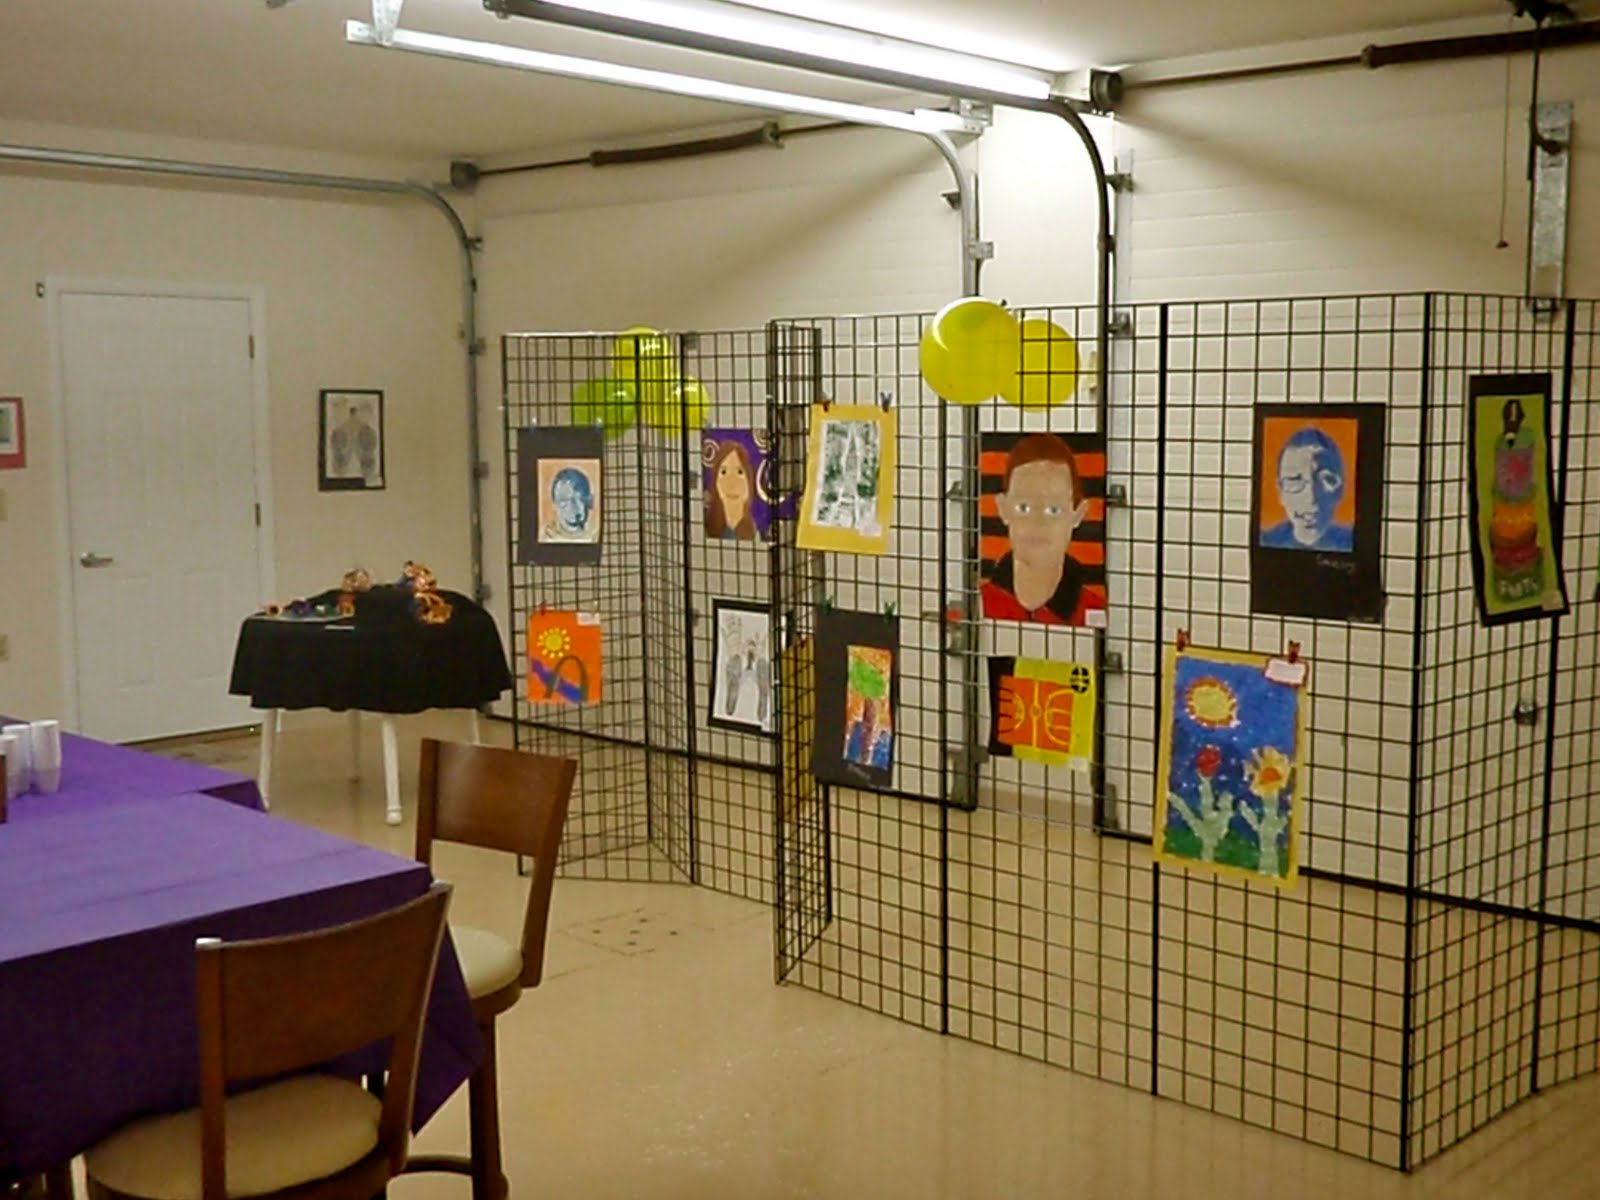 organized chaos art show at local art gallery